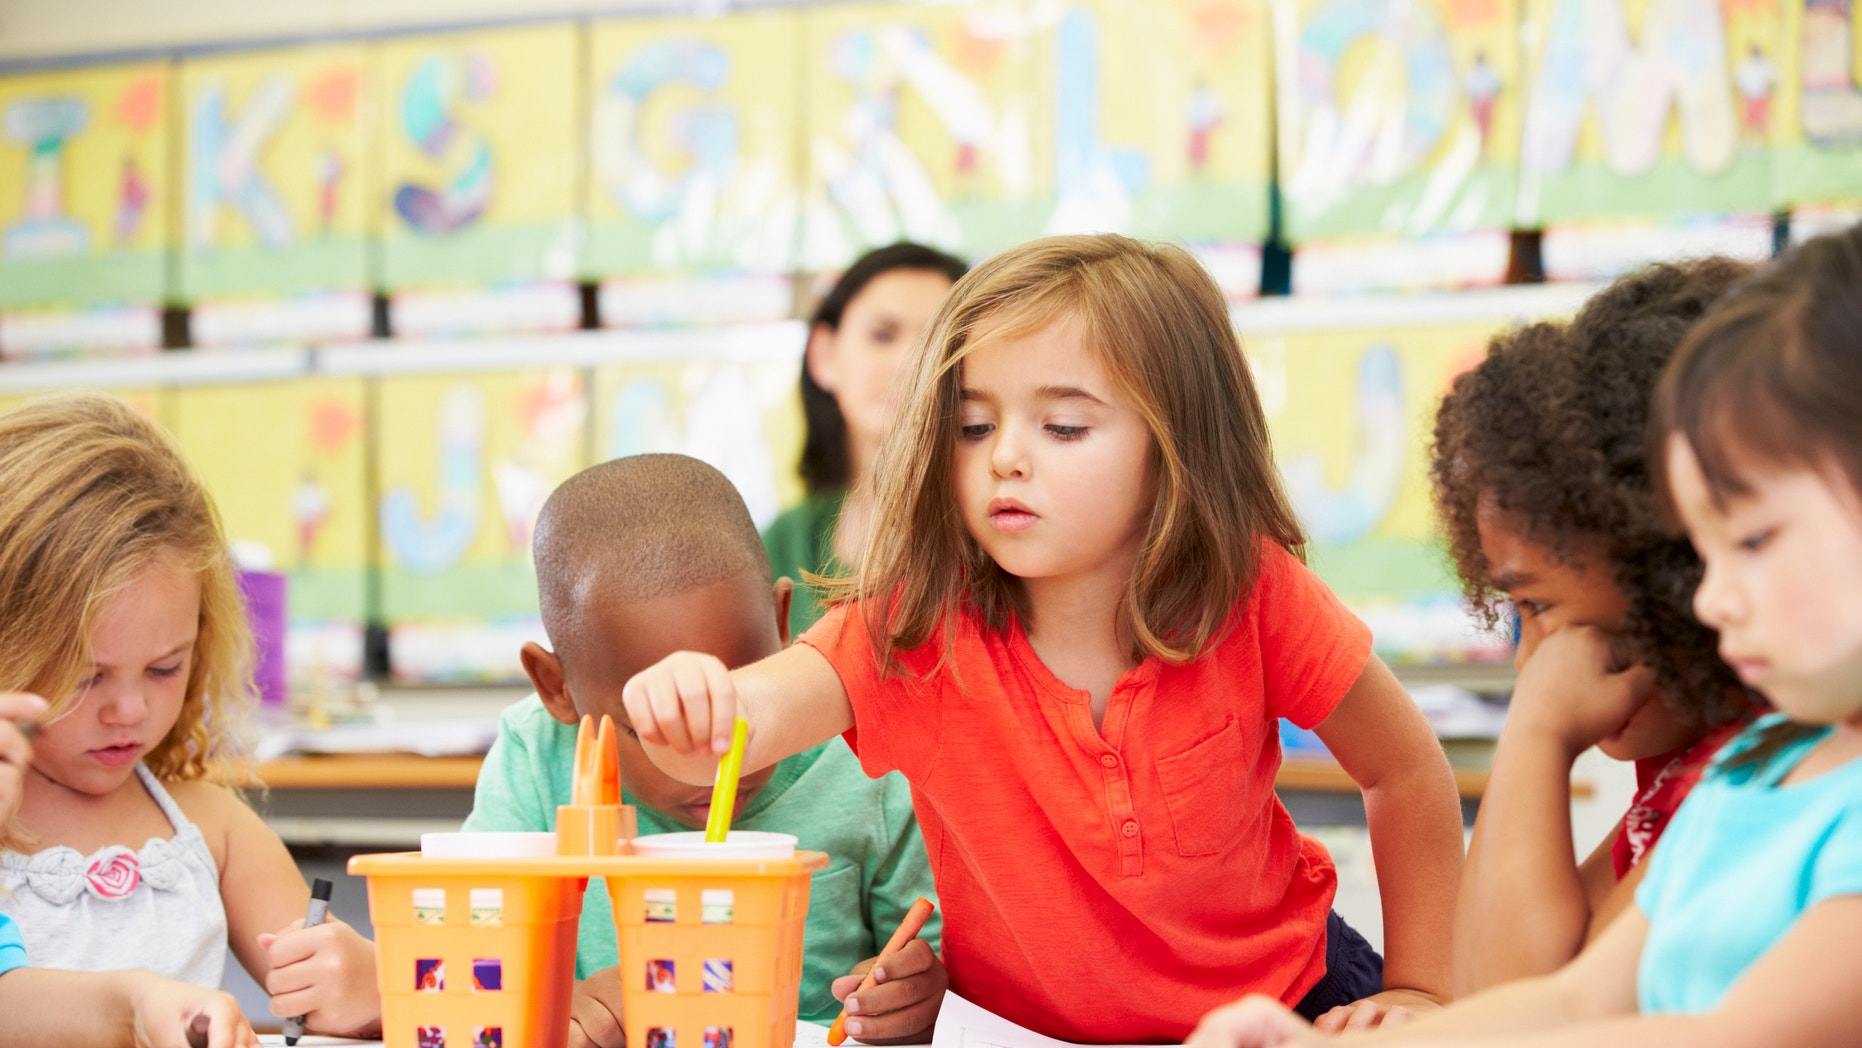 Group Of Elementary Age Children In Art Class With Teacher Reaching For Crayon